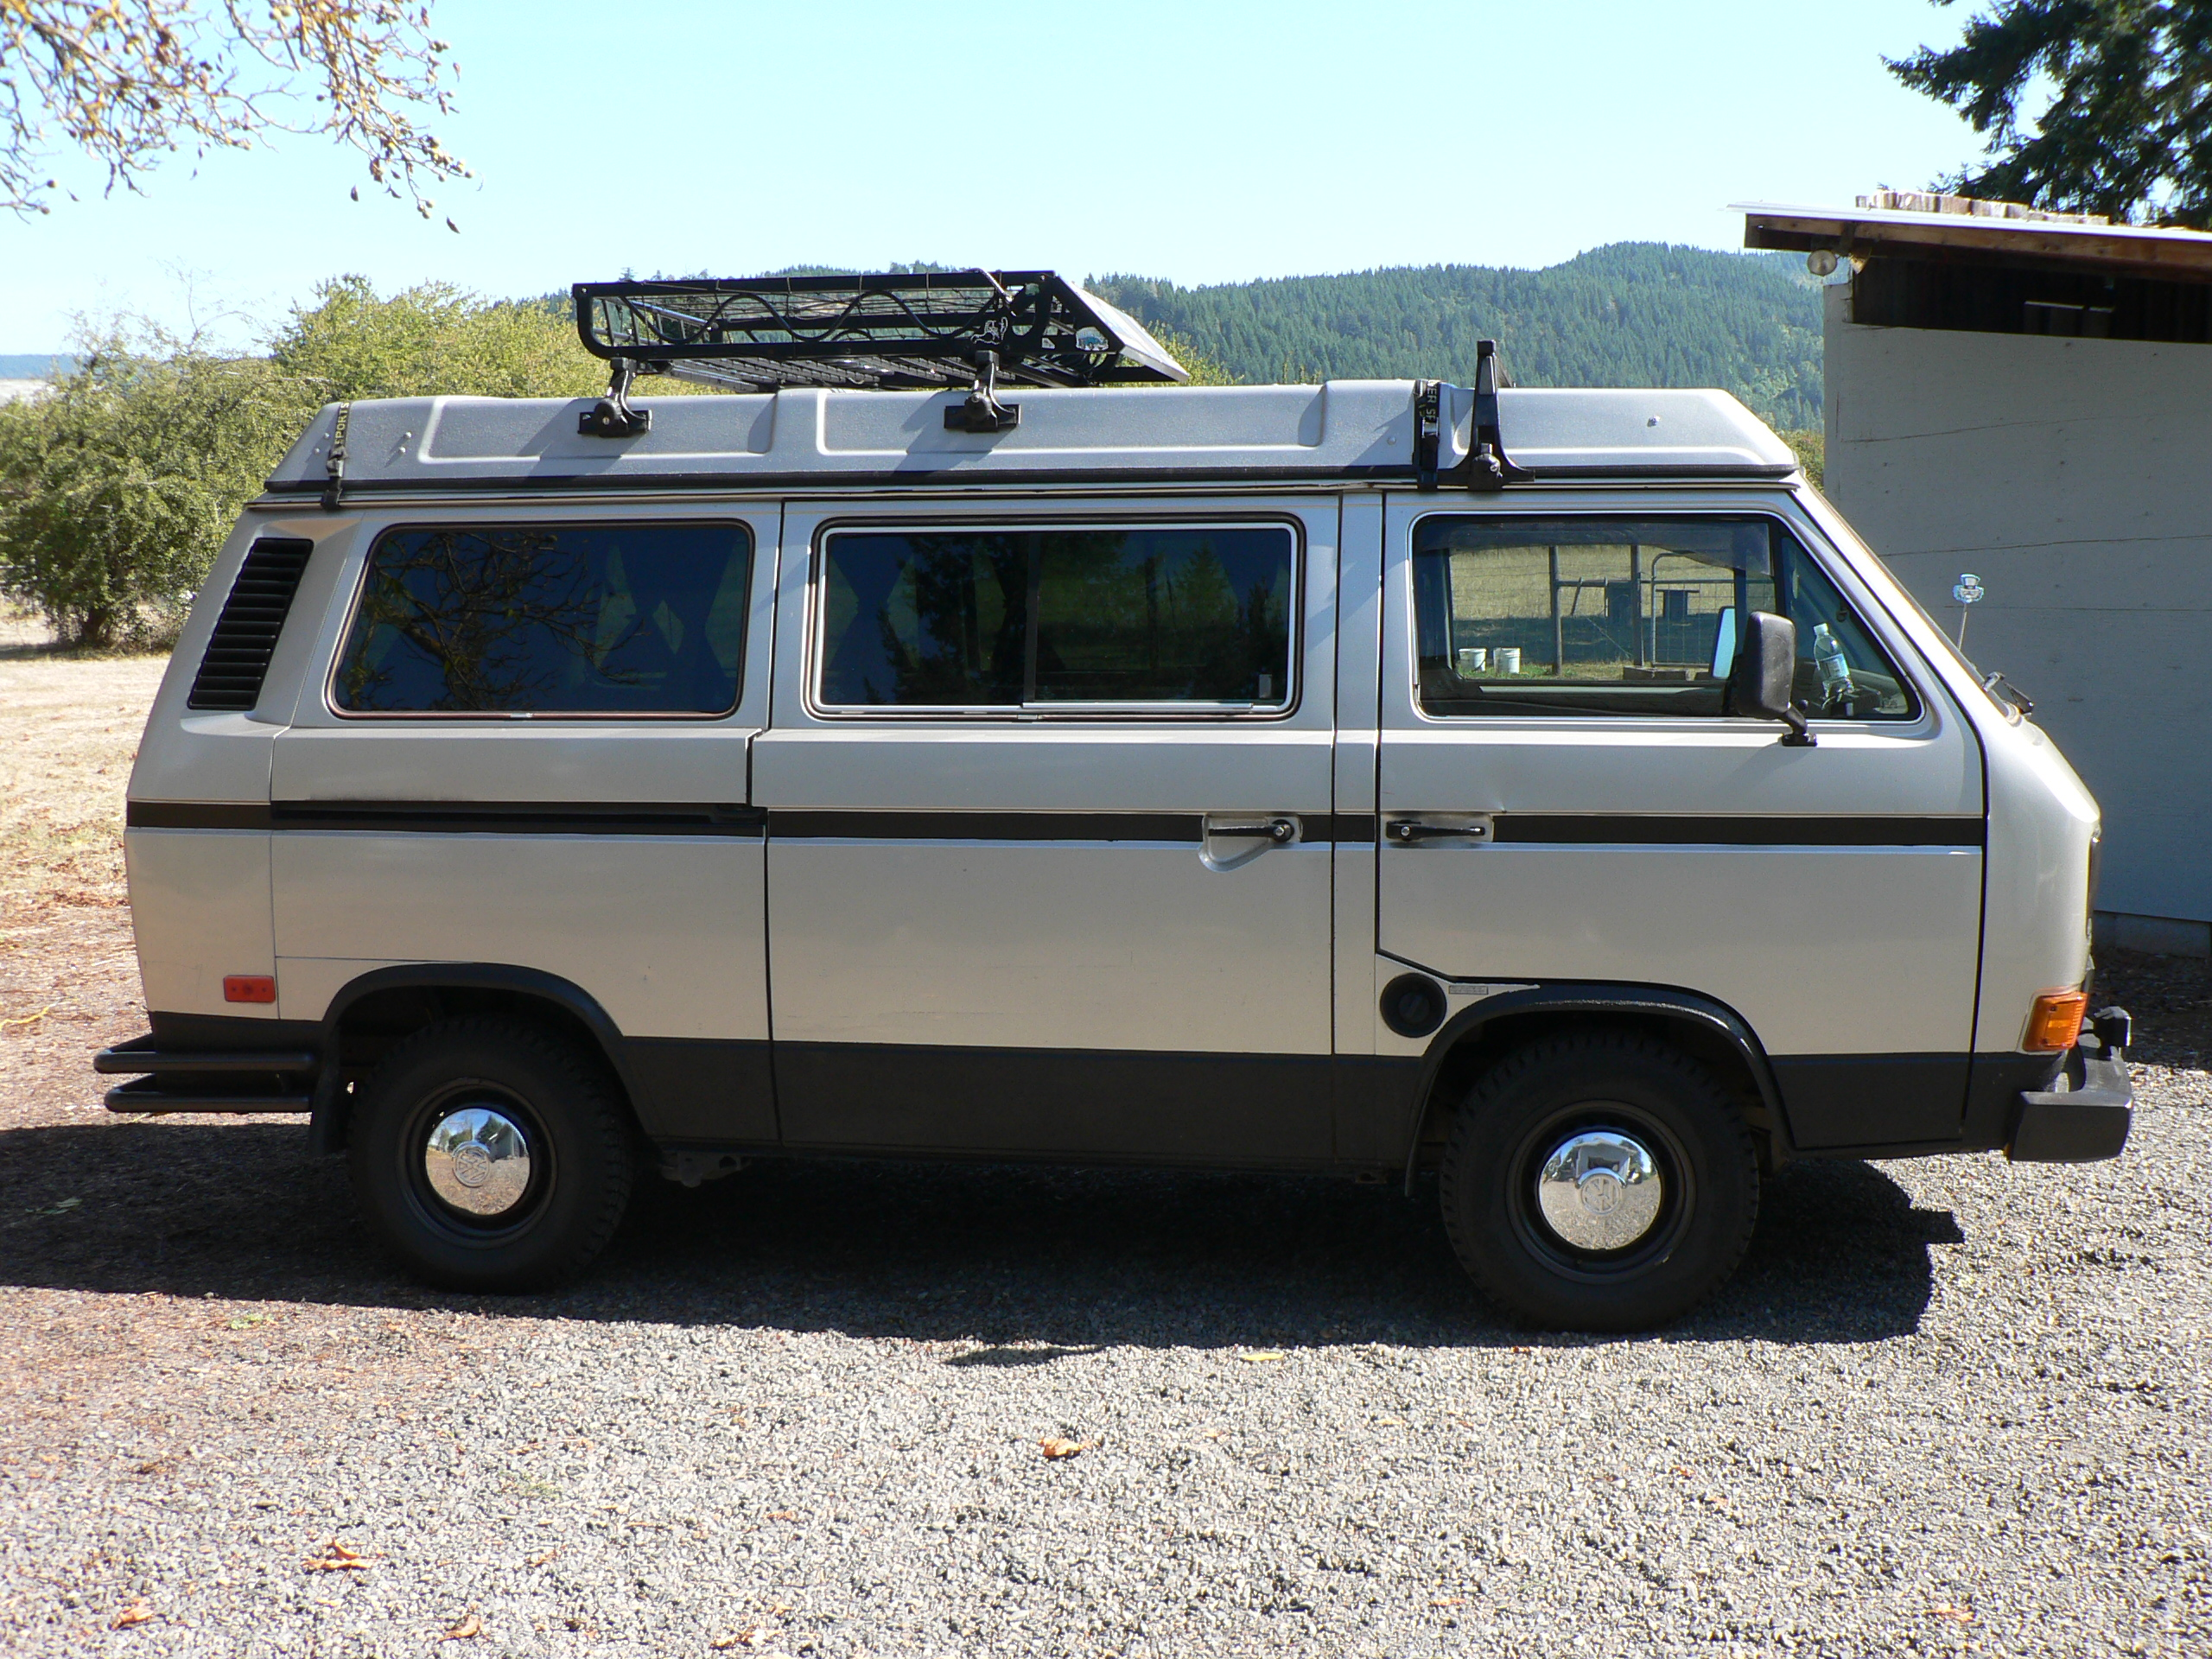 Vanagon View Topic Post Your Roof Rack Setup Kia Sportage 2 0 Td Wiring Diagram Image May Have Been Reduced In Size Click To Fullscreen